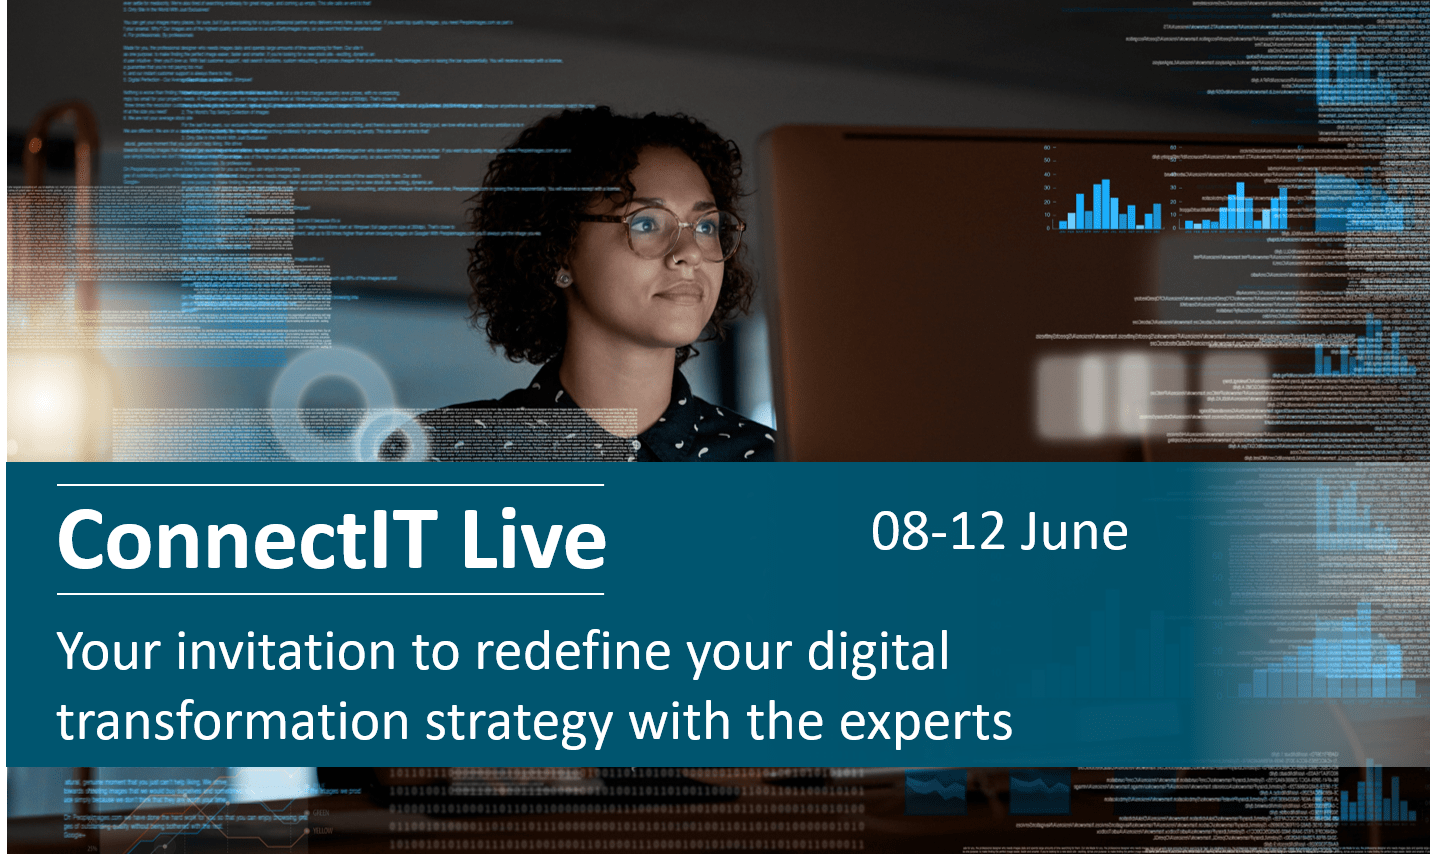 Introducing ConnectIT Live